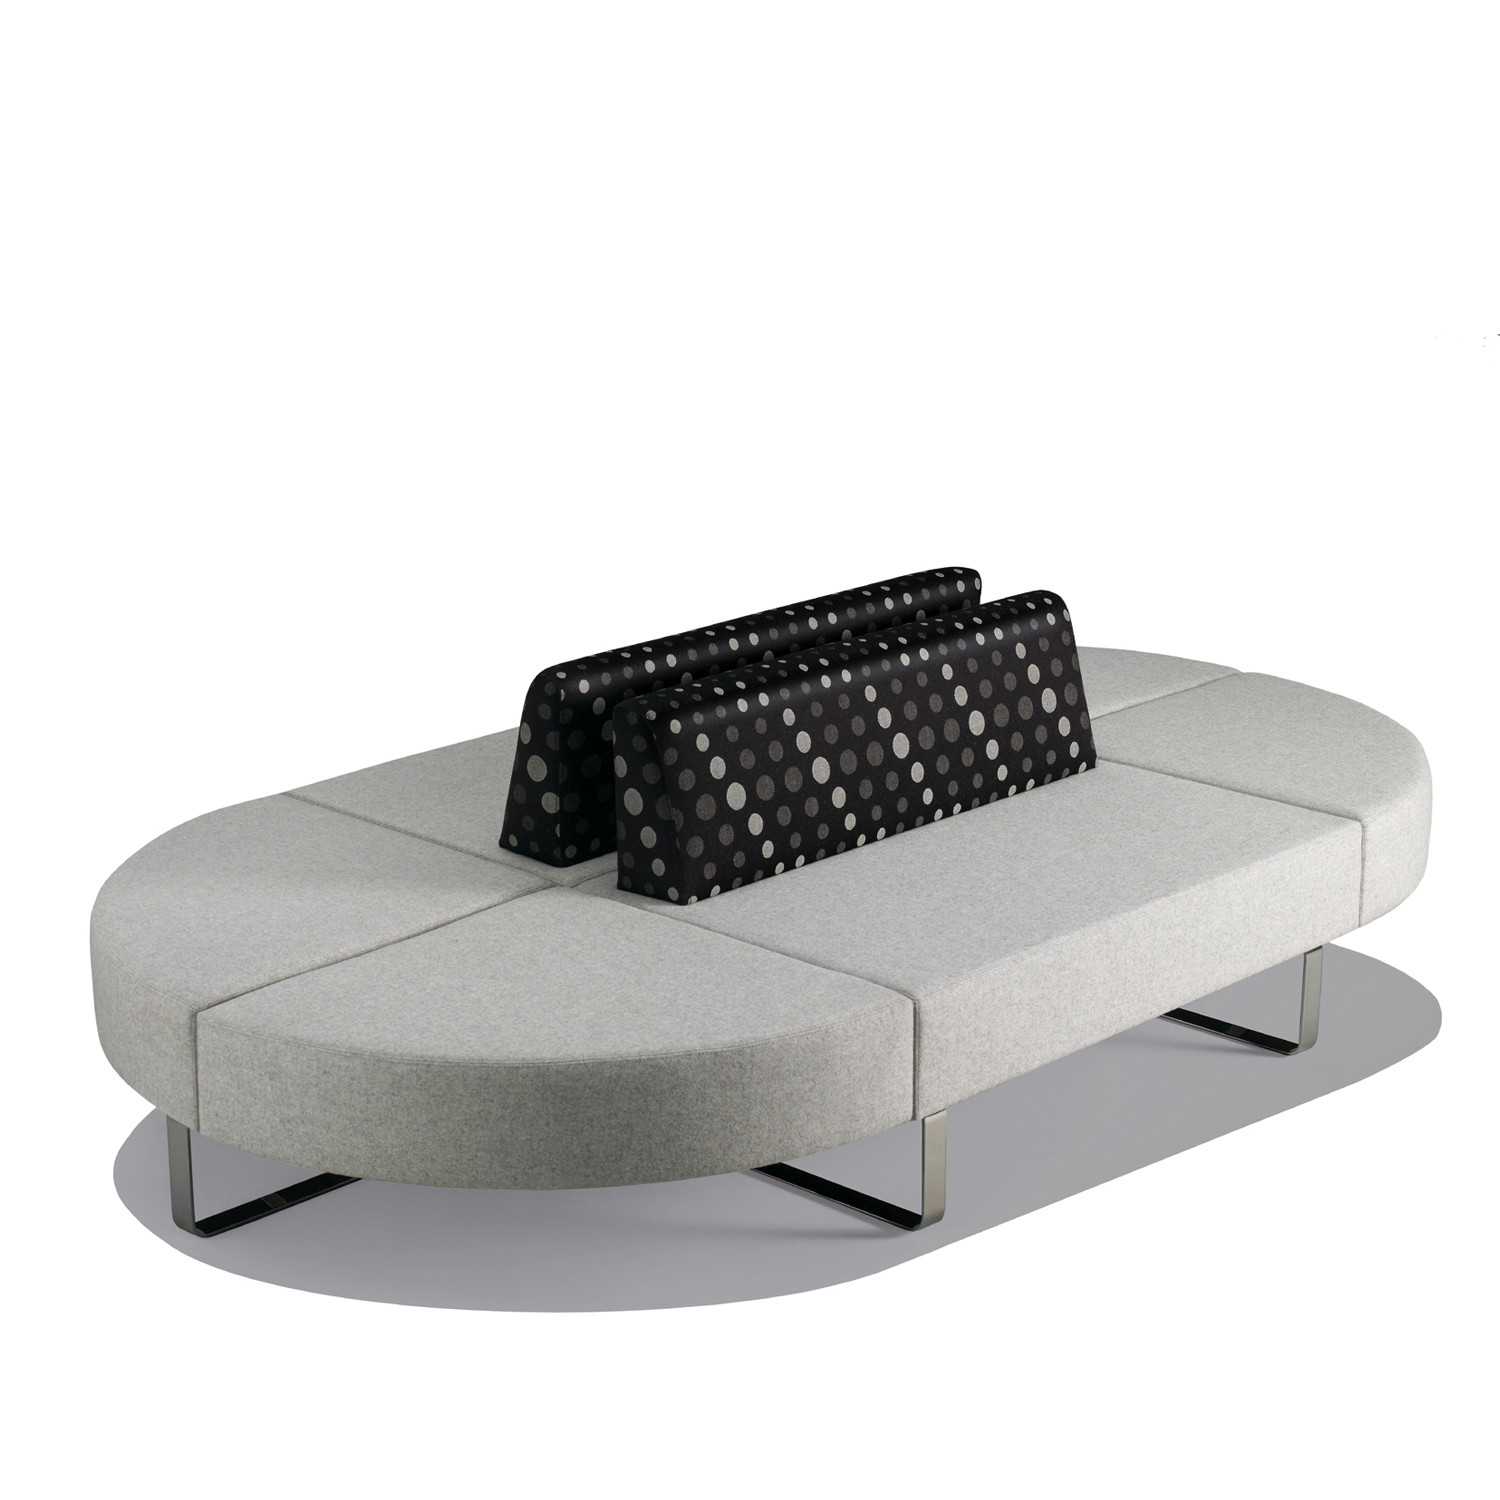 Intro Modular Seating